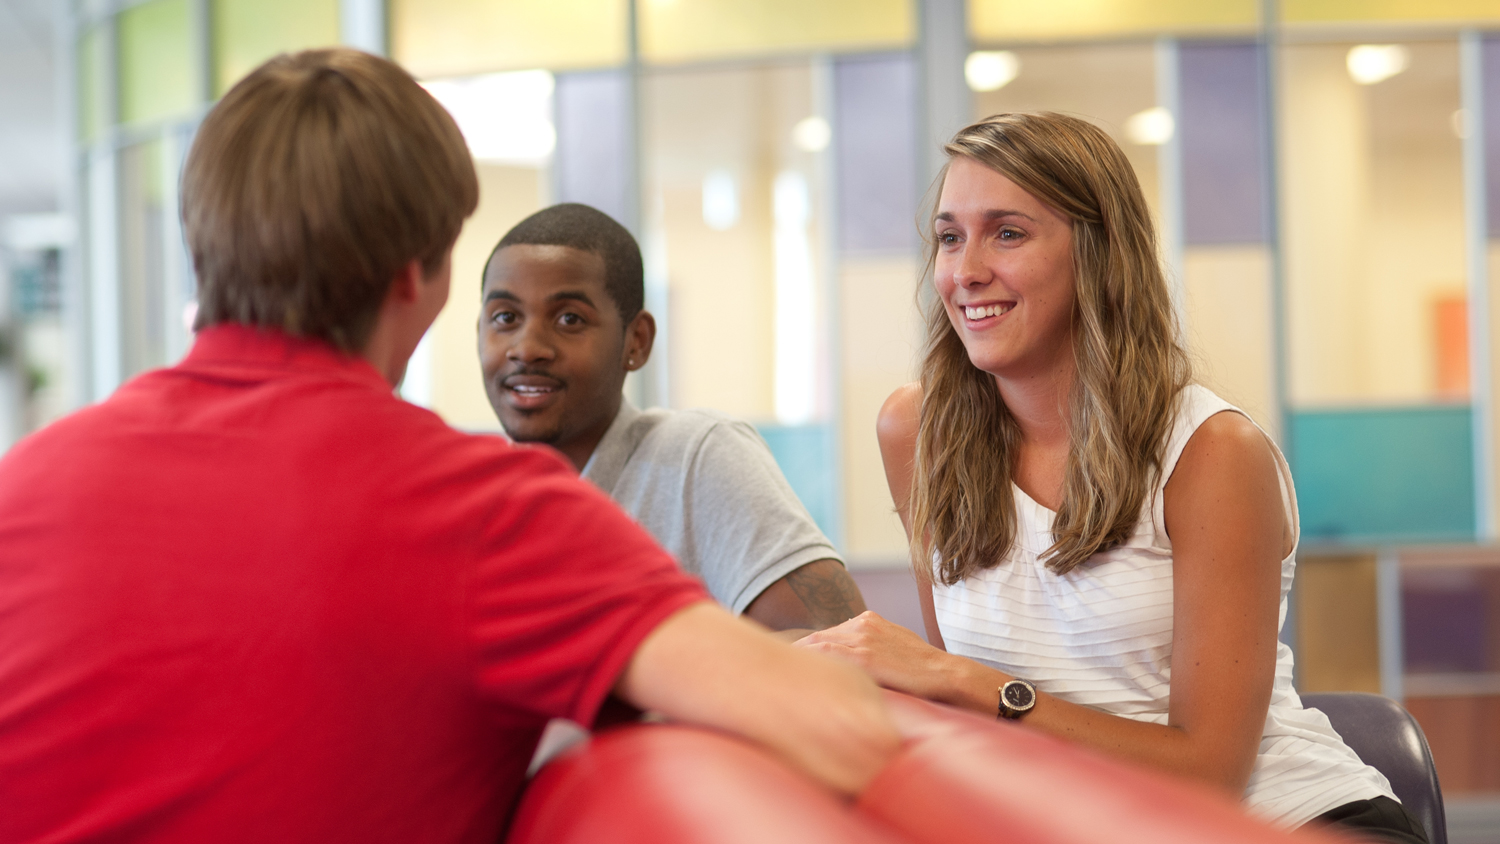 Students on campus - Academics - College of Natural Resources at NCState University